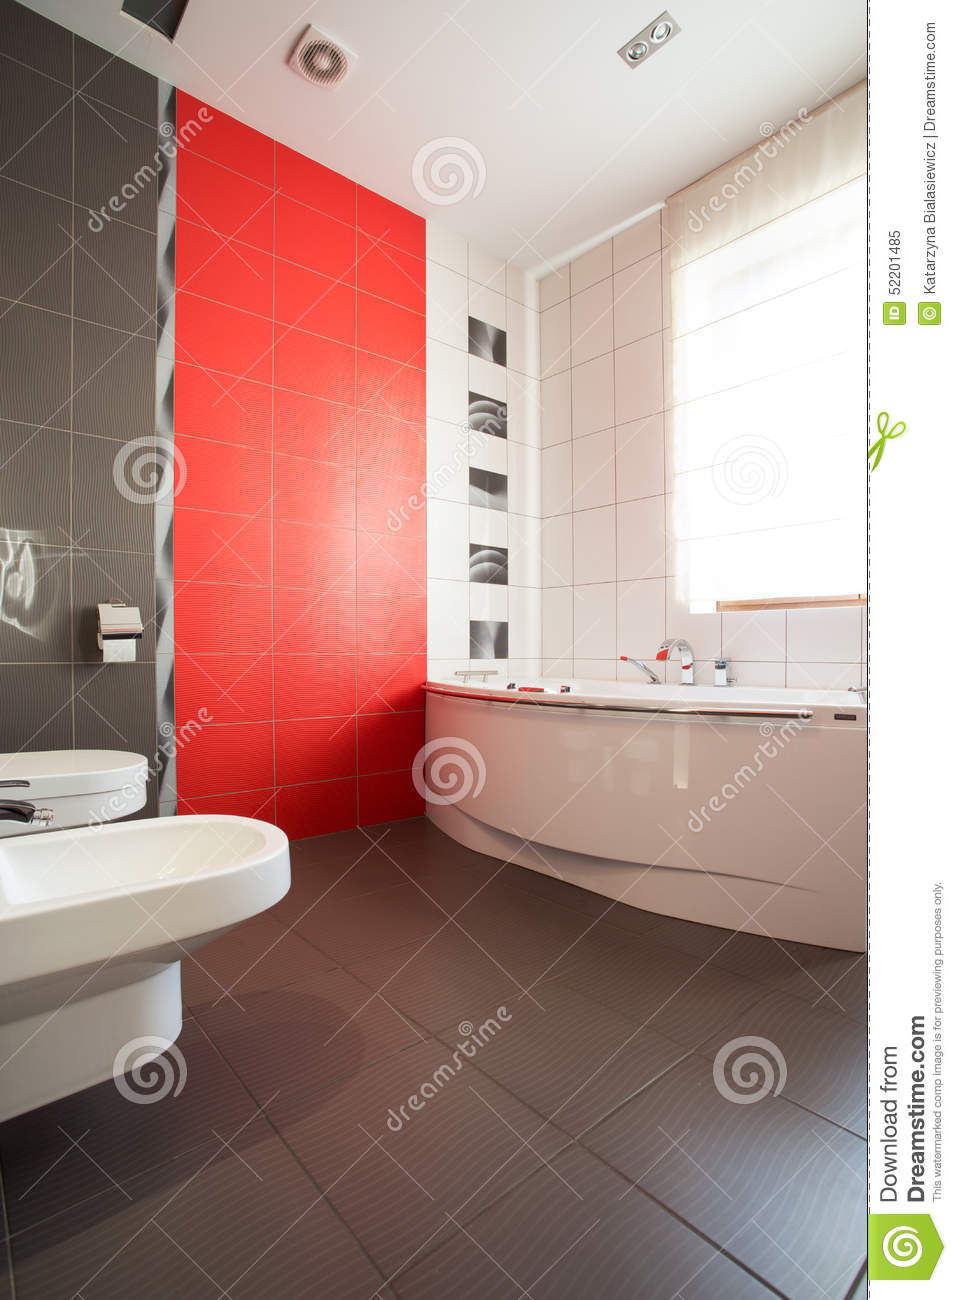 grey and red bathroom stock image image of interior 52201485. Black Bedroom Furniture Sets. Home Design Ideas